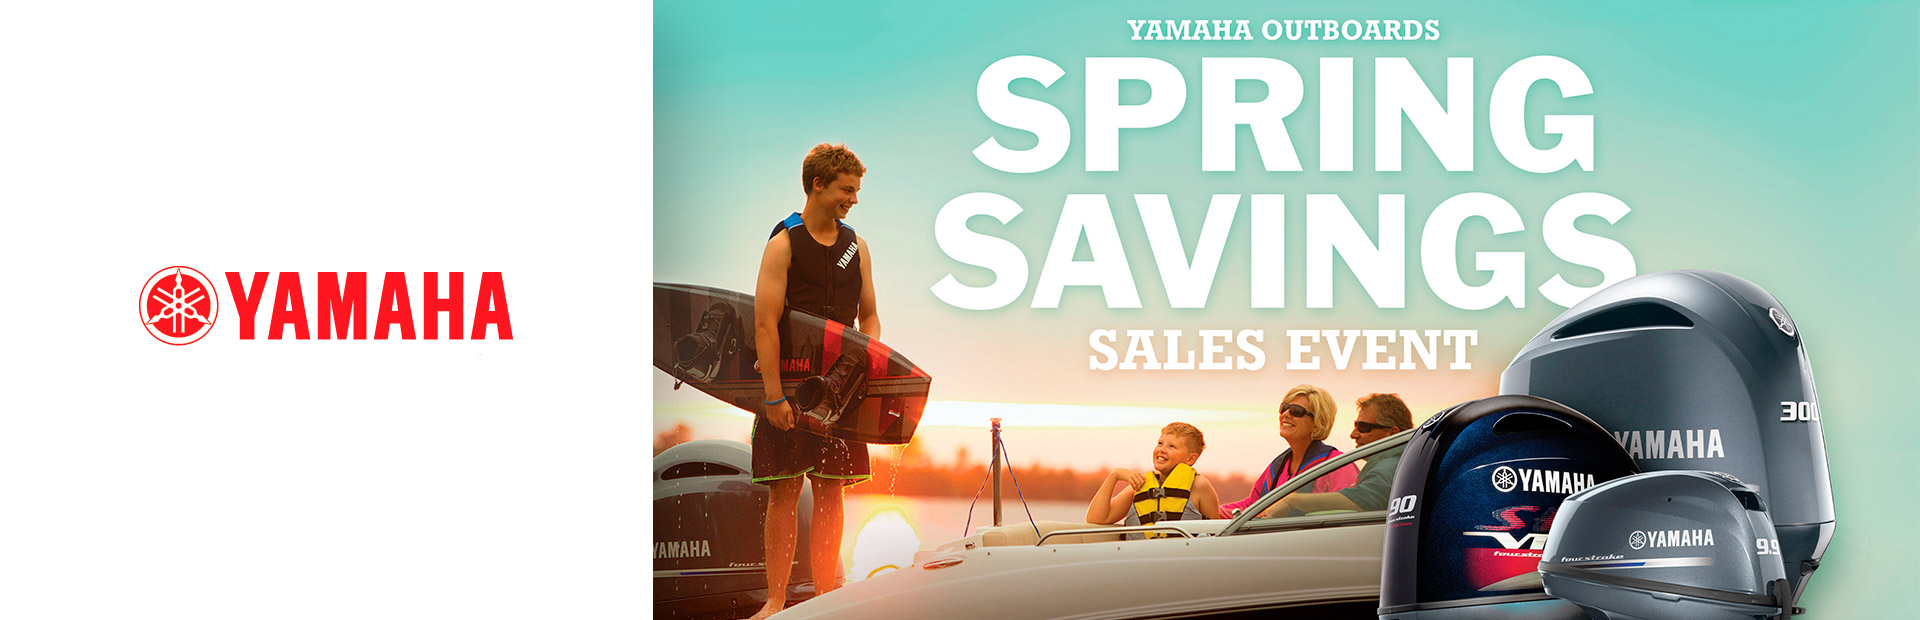 Yamaha: Spring Savings Sales Event